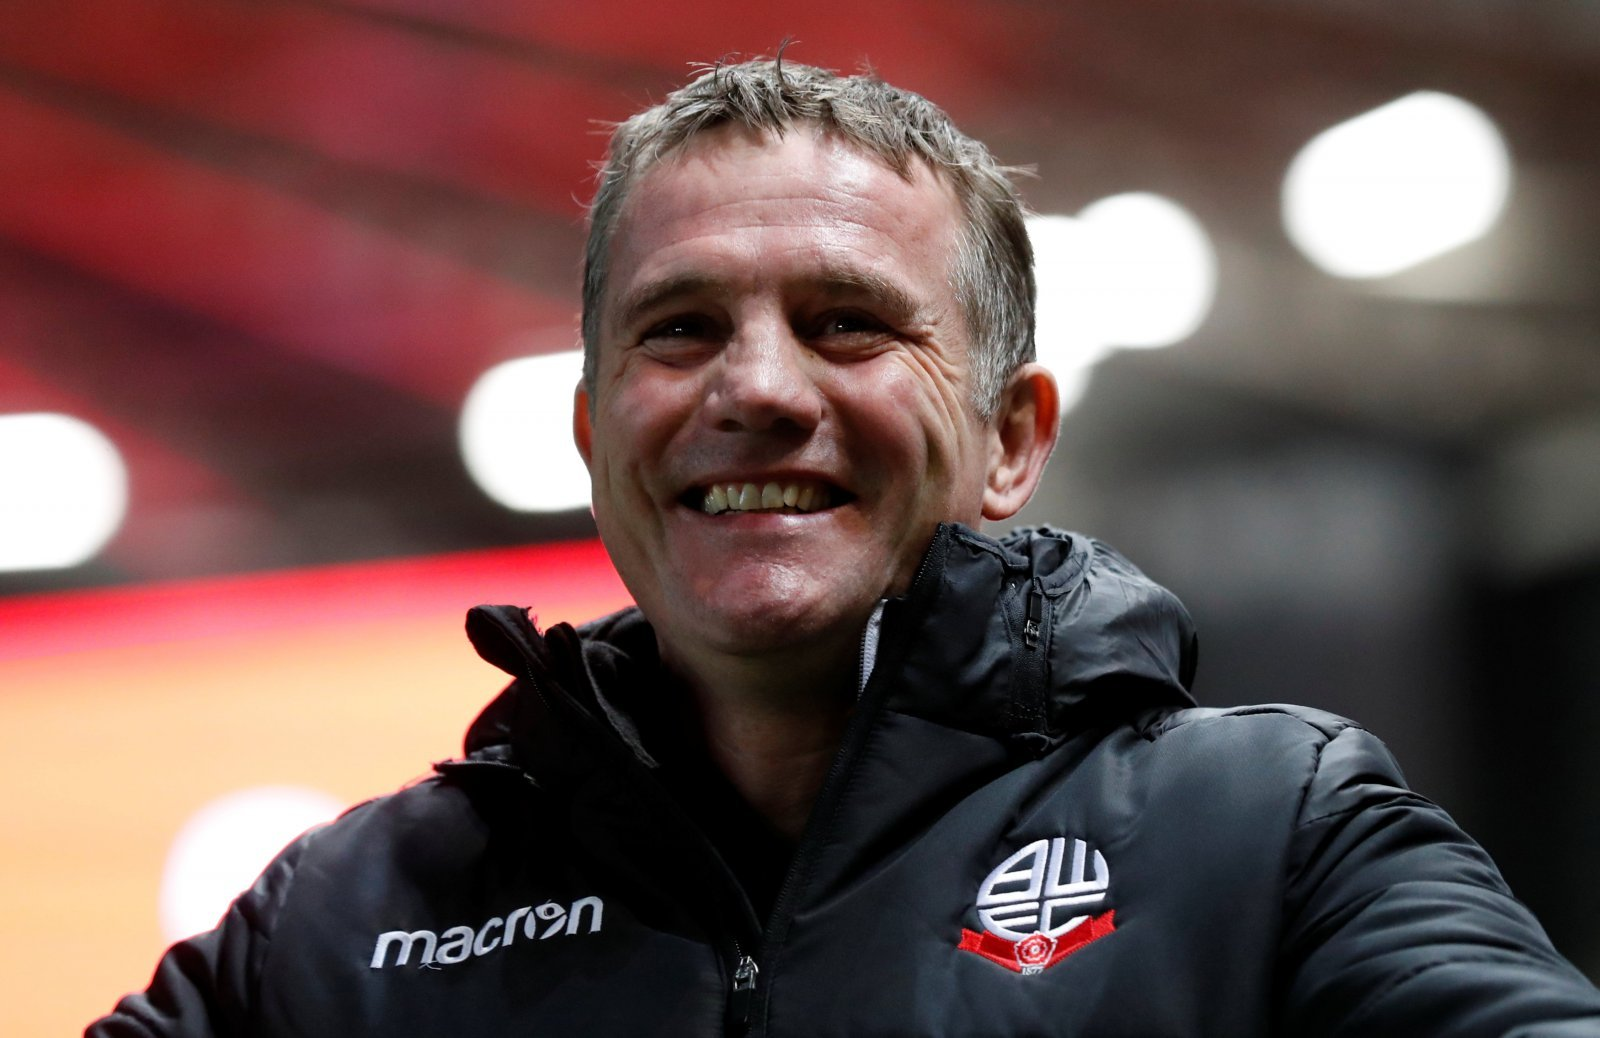 Sunderland: Phil Parkinson has been appointed as the club's new manager